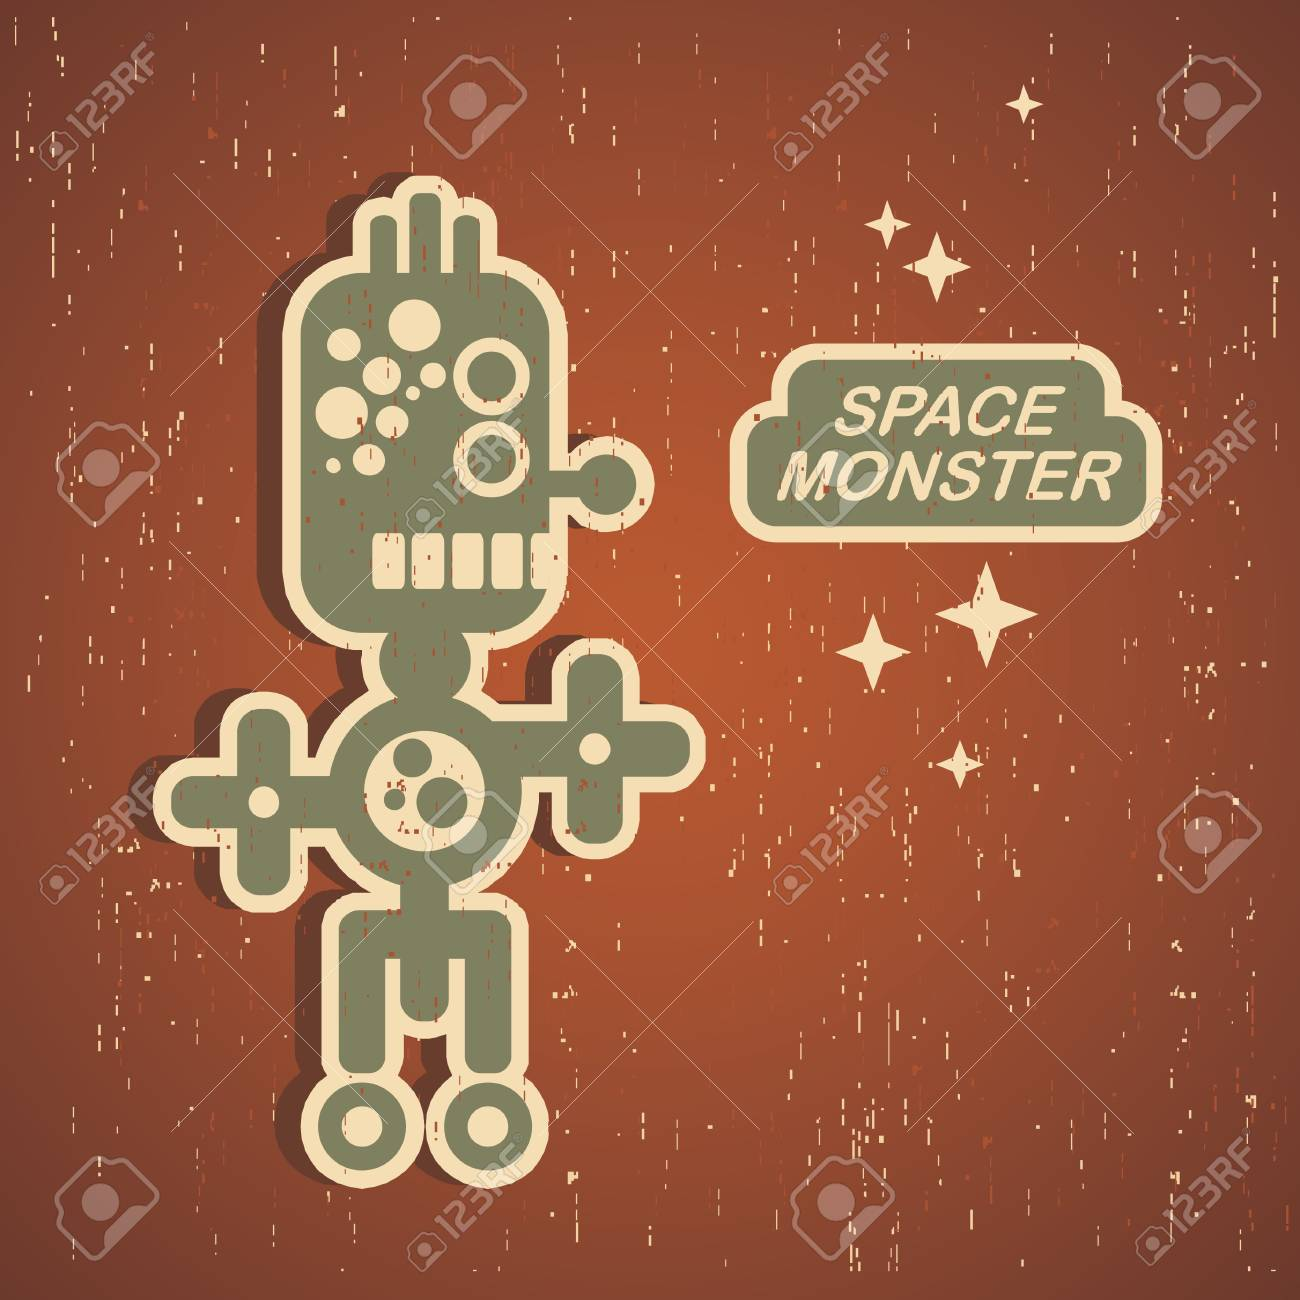 Retro monster. Vintage robot illustration Stock Vector - 15442203